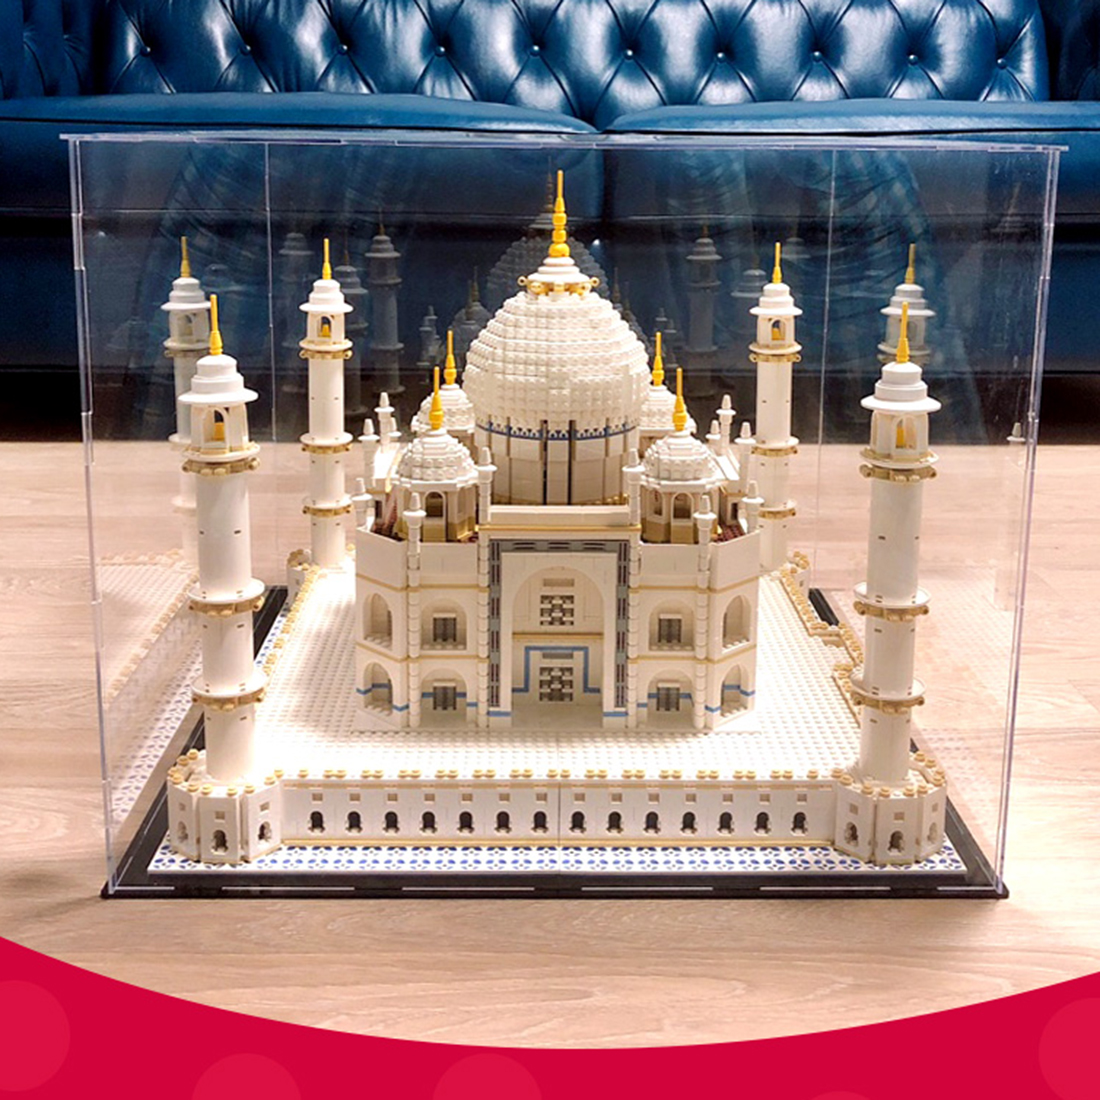 54 X 54 X 45cm Acrylic Dustproof Display Box Show Case For Taj Mahal 10256 For Gift (Display Box Only, No Kit)- Black Bottom